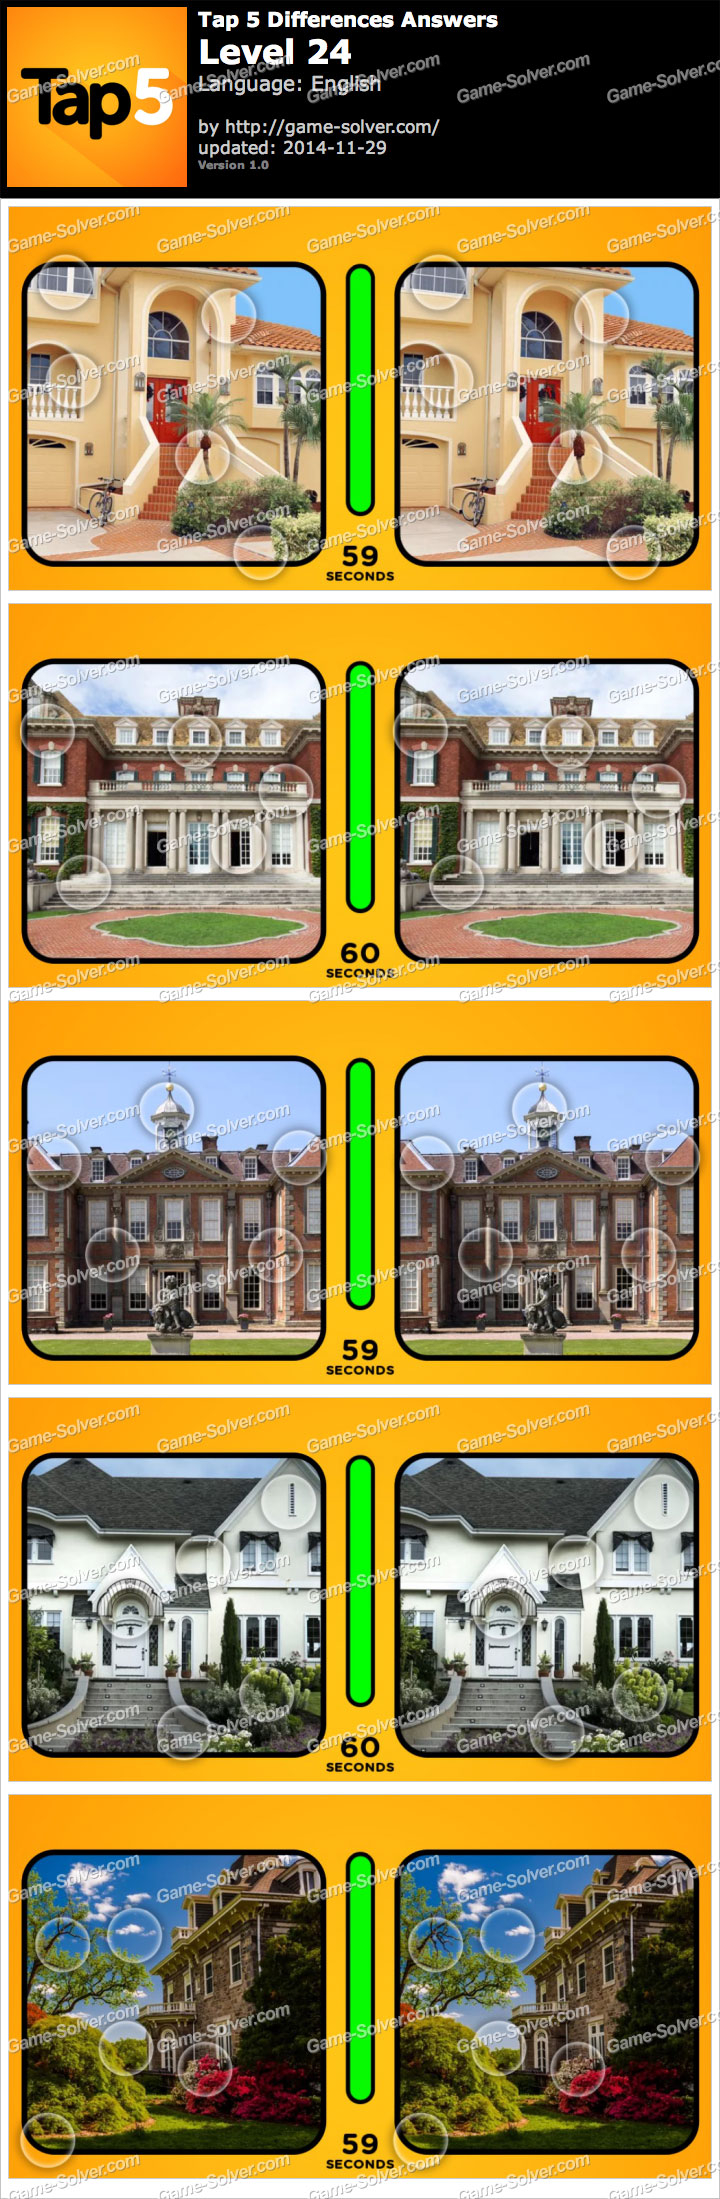 Tap 5 Differences Level 24